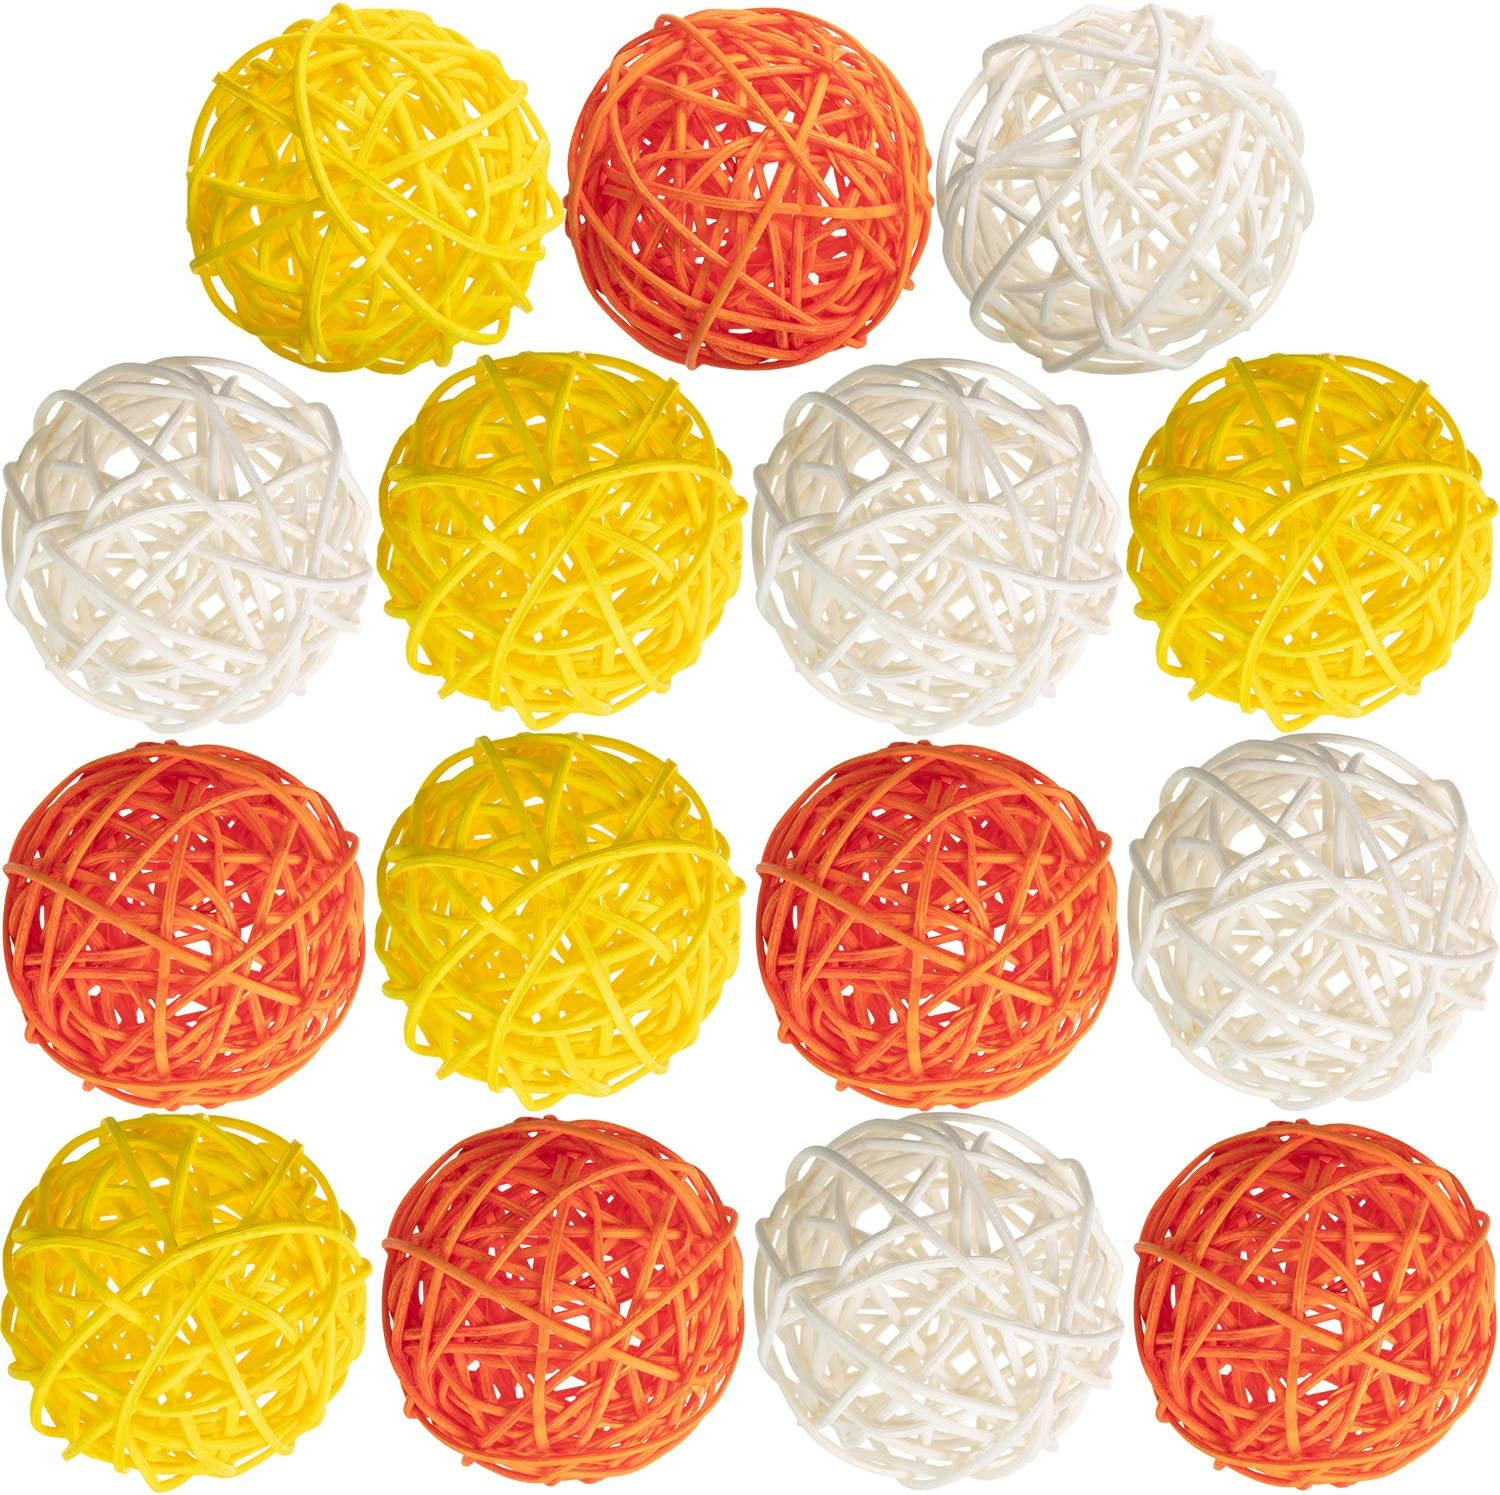 Aromatherapy Accessories Yellow Gray White Yaomiao 15 Pieces Wicker Rattan Balls Decorative Orbs Vase Fillers for Craft Project Baby Shower Wedding Table Decoration Diameter 2 Inch Themed Party